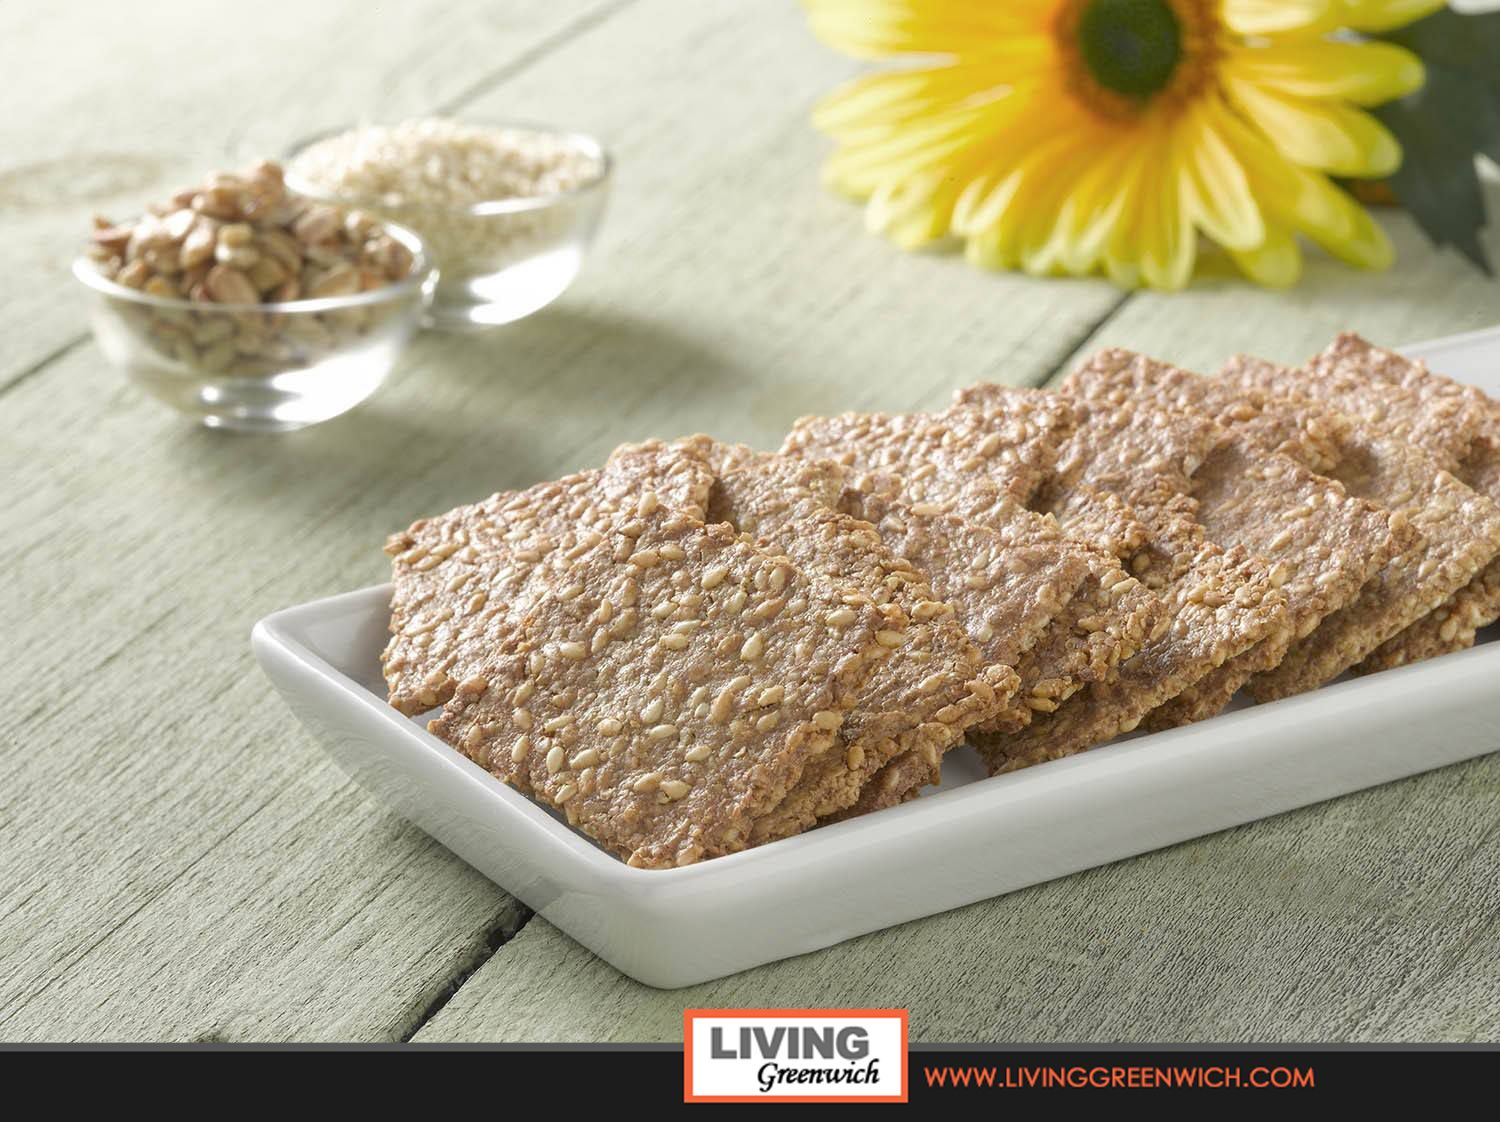 Have you tried these Paleo-friendly and gluten-free crackers made right here in Greenwich? These crackers by Emilie's Kitchen of Greenwich have been making a big impression throughout Fairfield and Westchester Counties. And now, Living Greenwich is offering this exclusive promotion for you to give them a try...now with Free Shipping! http://www.livinggreenwich.com/shop.html  #Greenwich #Connecticut